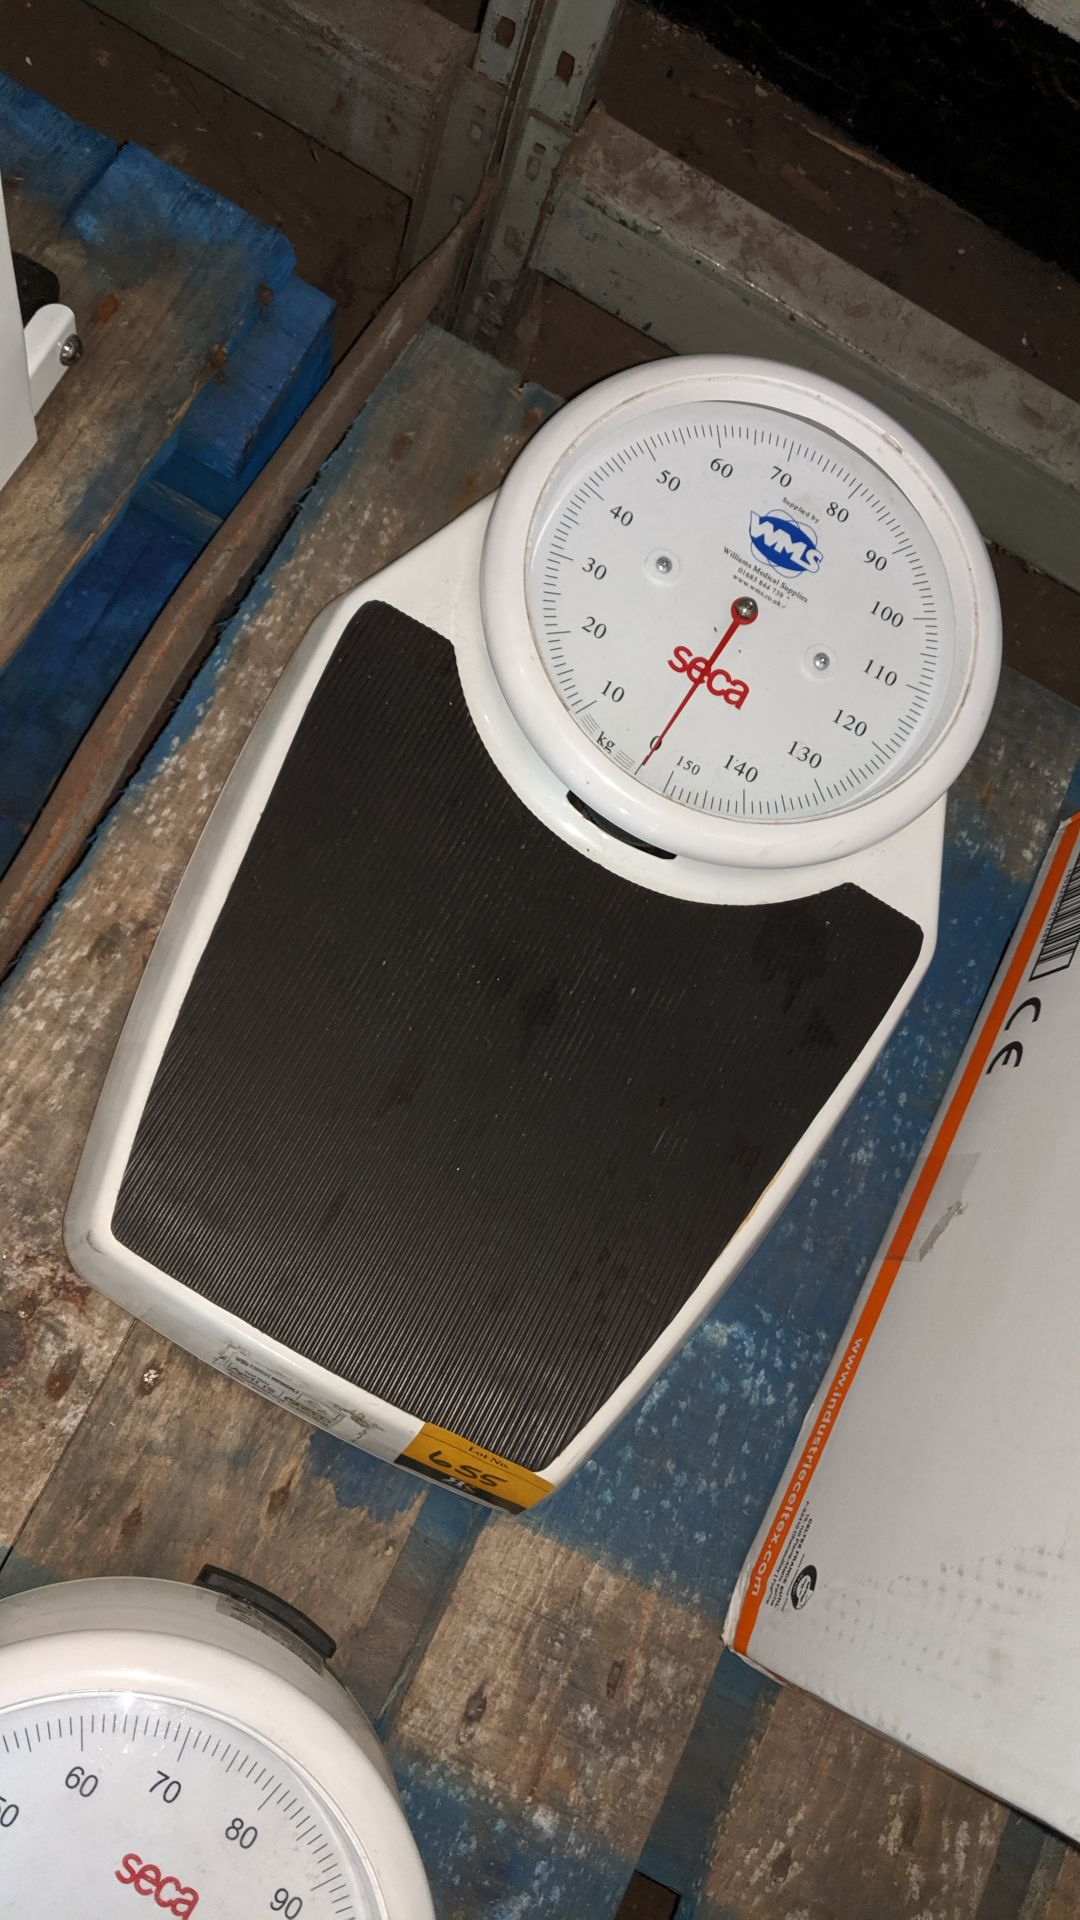 Lot 655 - Seca stand-on scales. This is one of a large number of lots used/owned by One To One (North West)